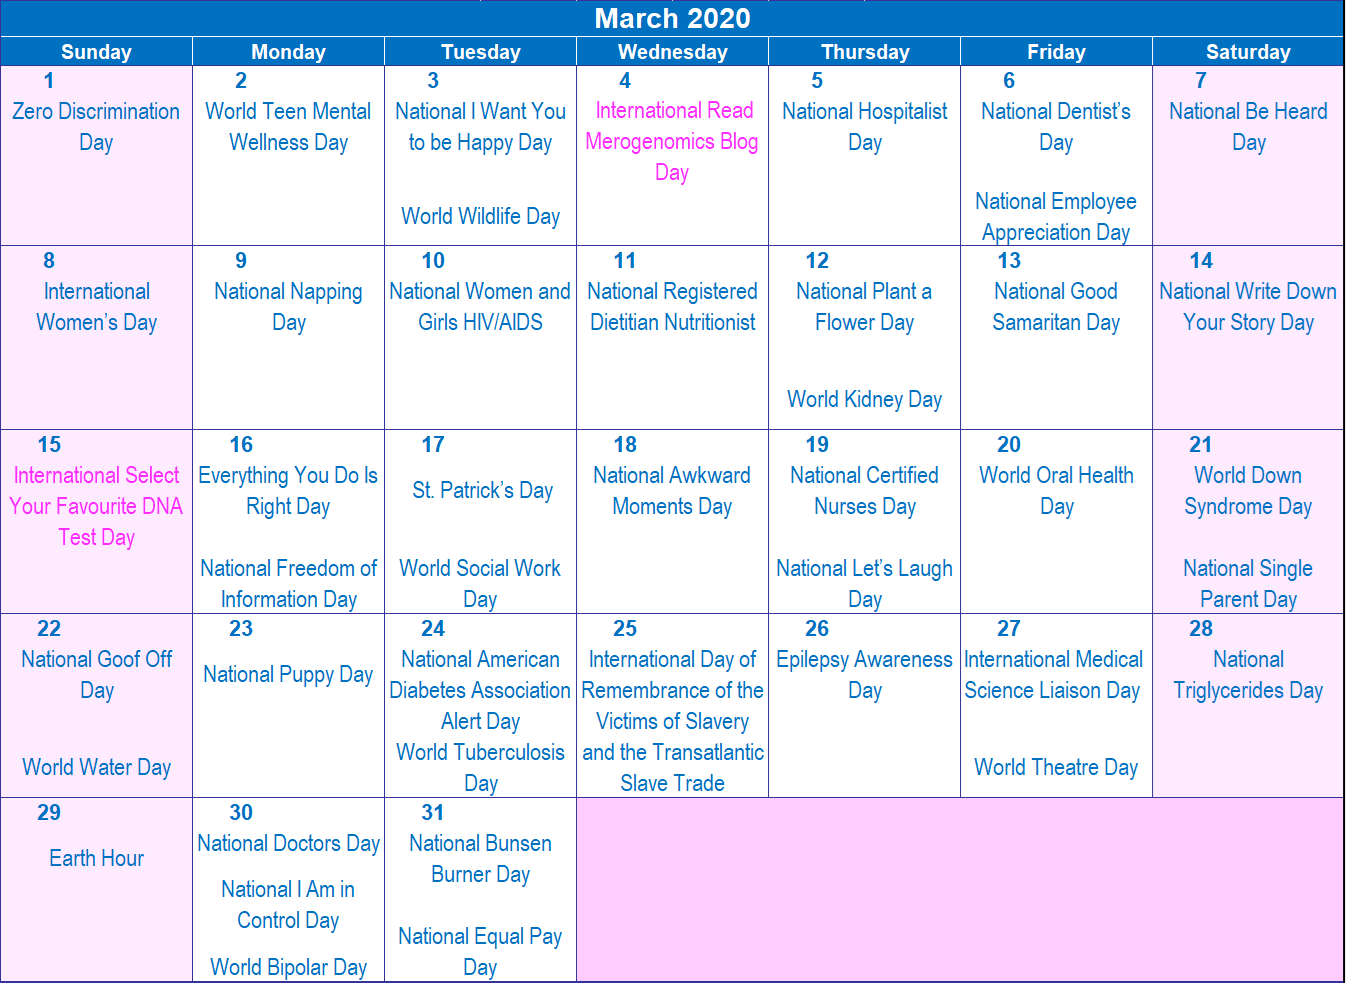 Image of March 2020 calendar of events